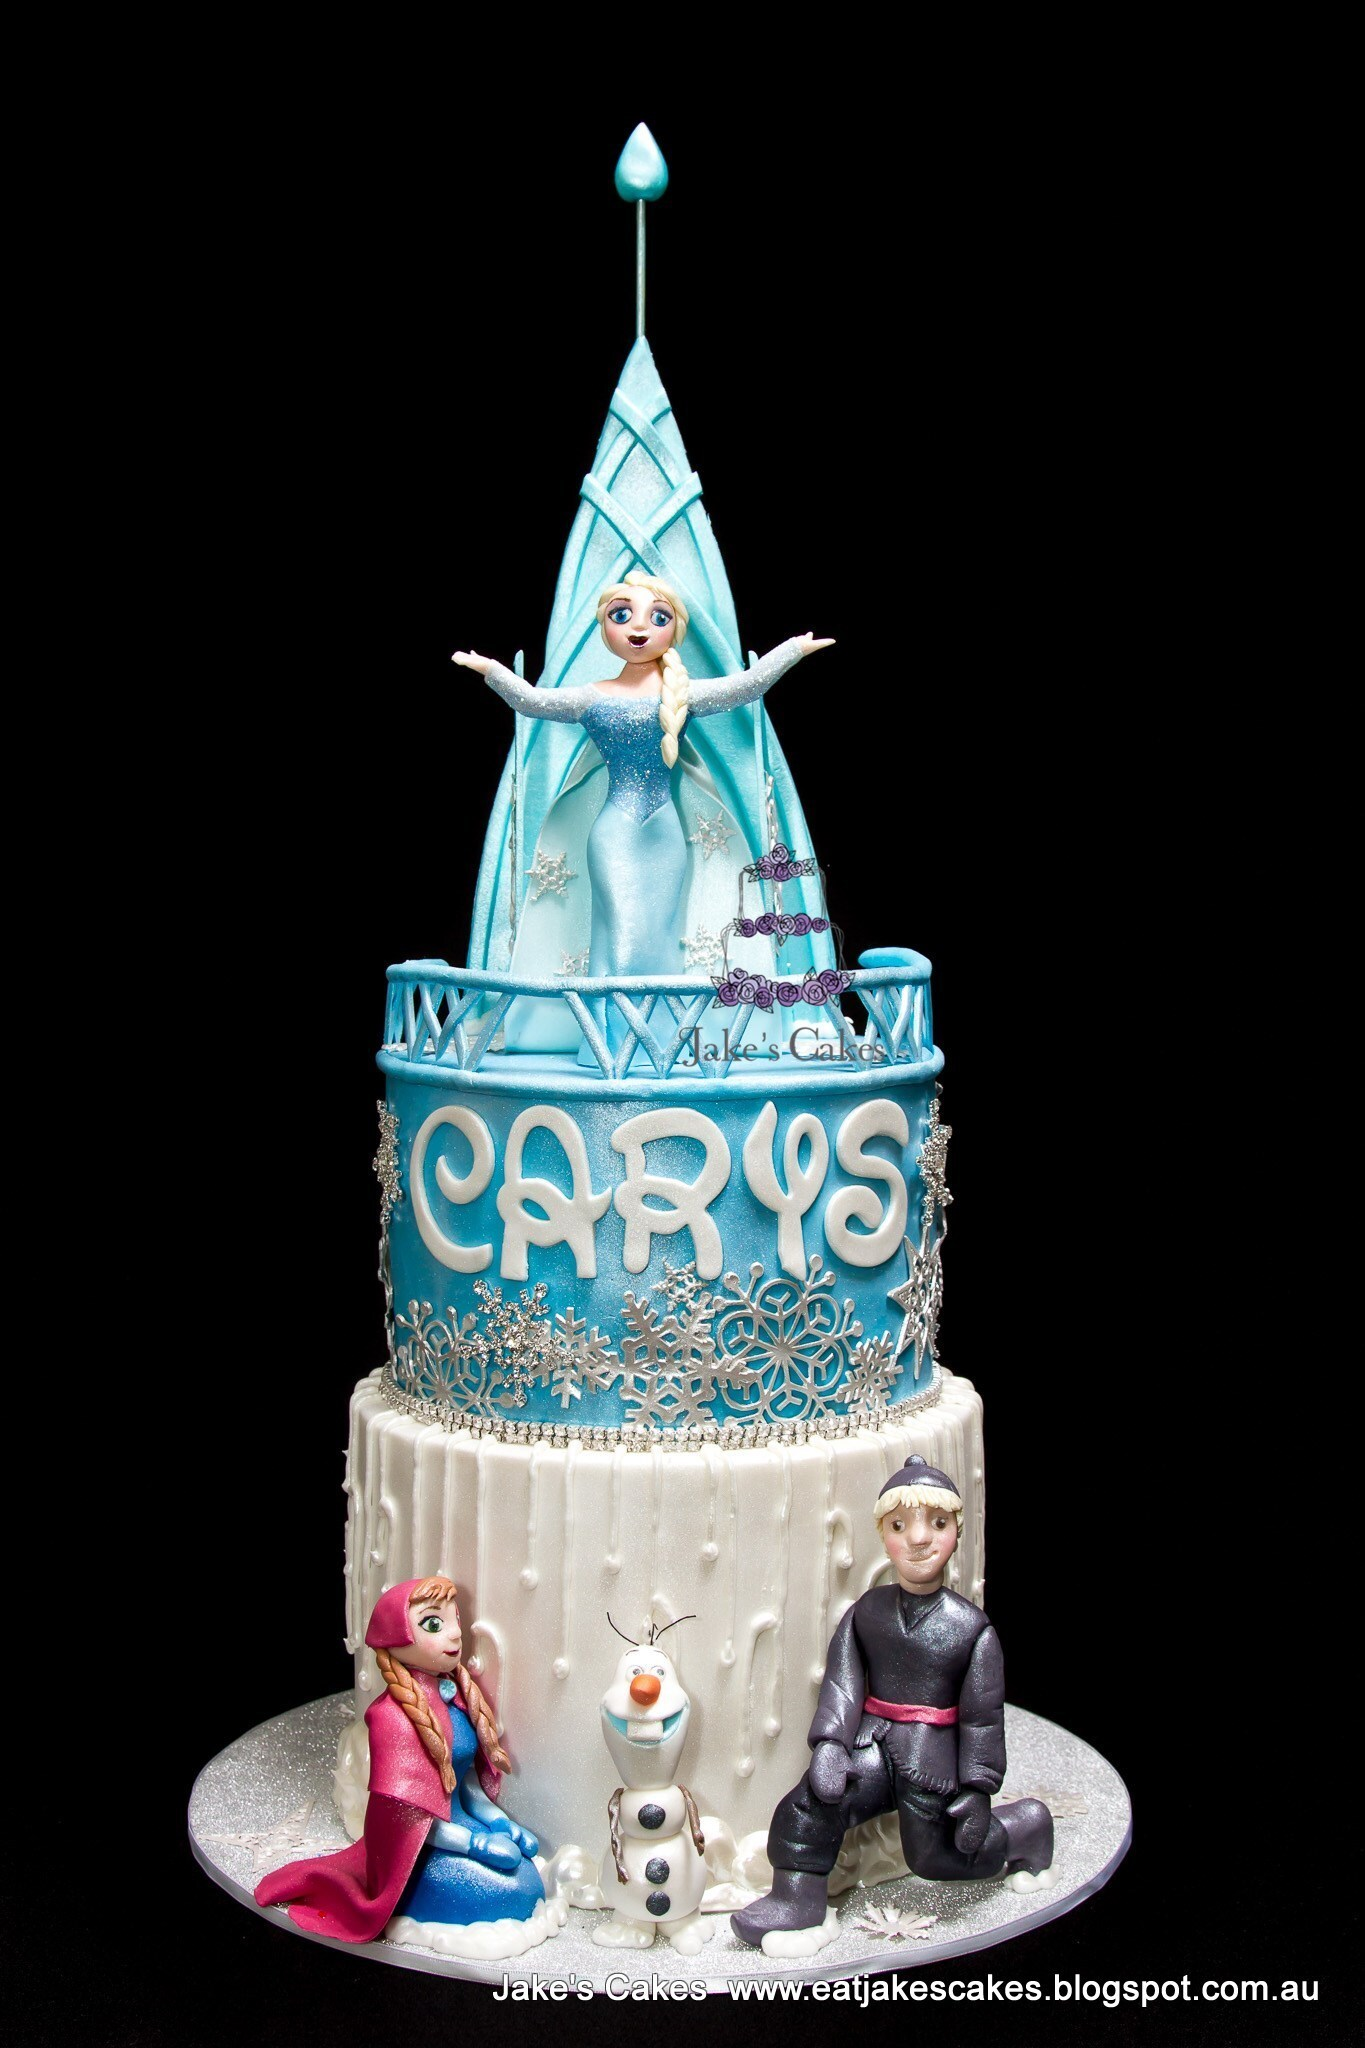 My Daughter's Frozen 4th Birthday Cake